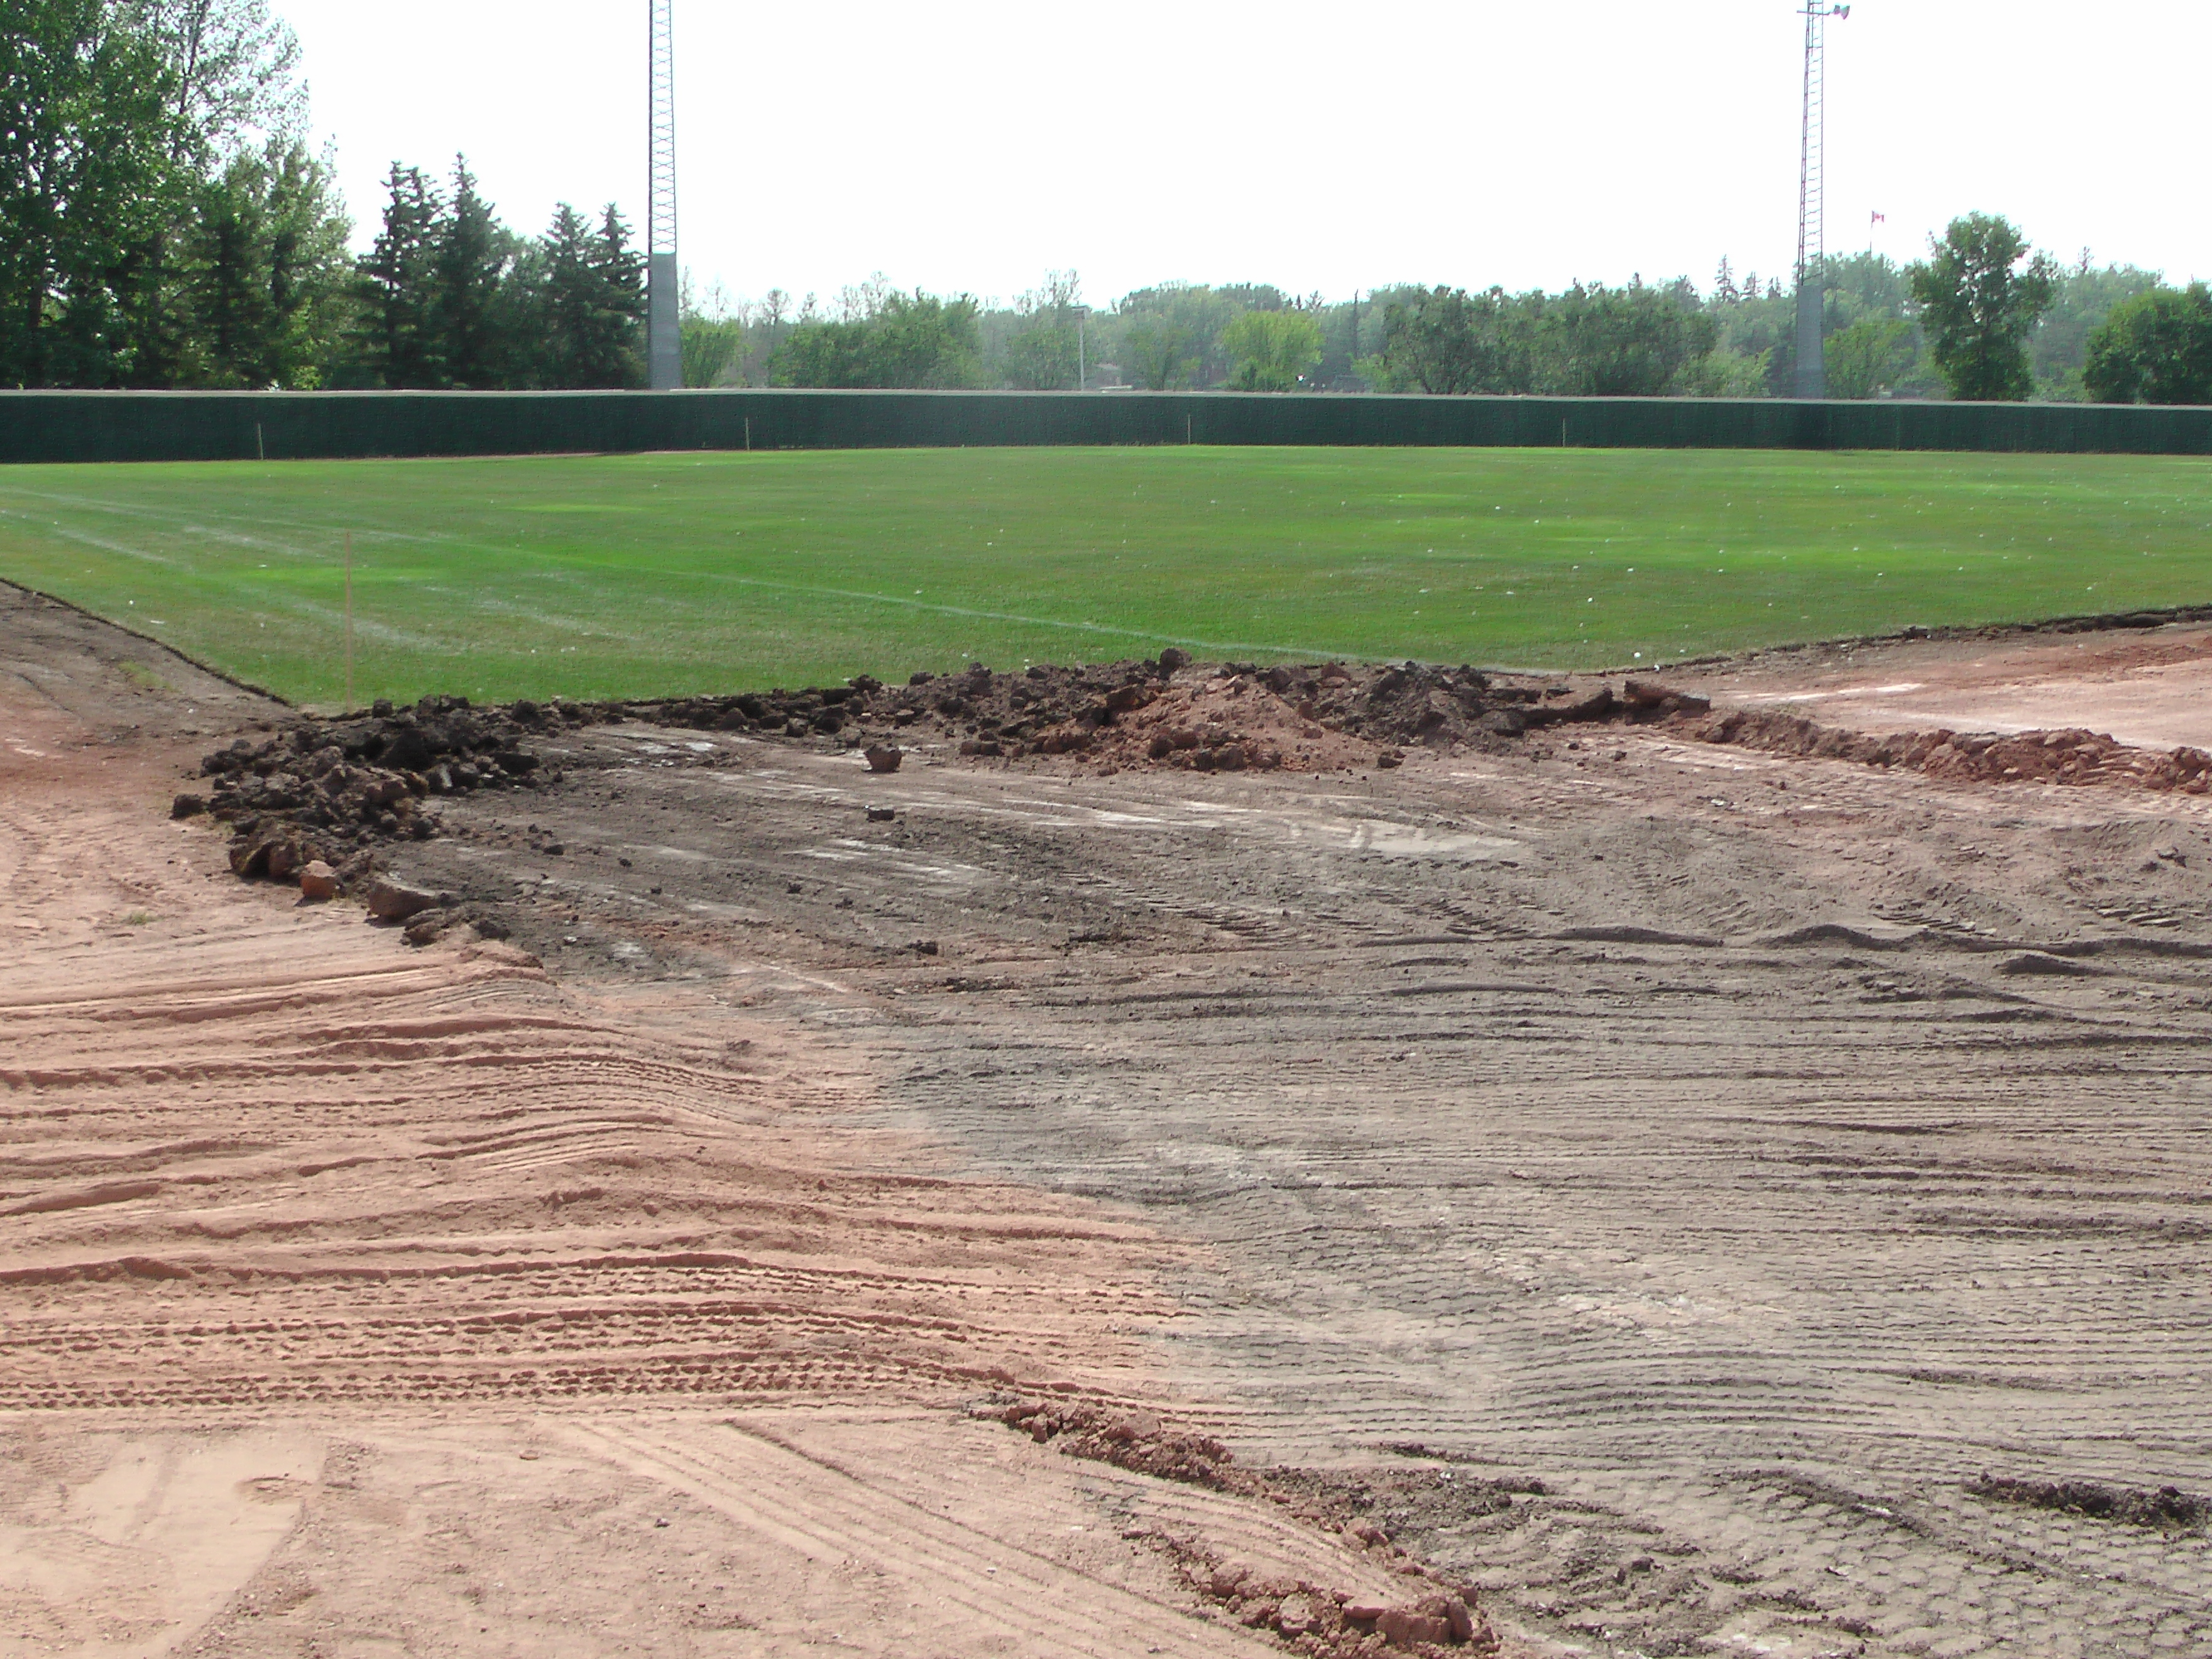 Aug 22 Optimist Park Field Renovations: New Top Soil Going In, after 45 dump trucks of dirt and grass removed! Pics and Video...check back for more!  - Image 2